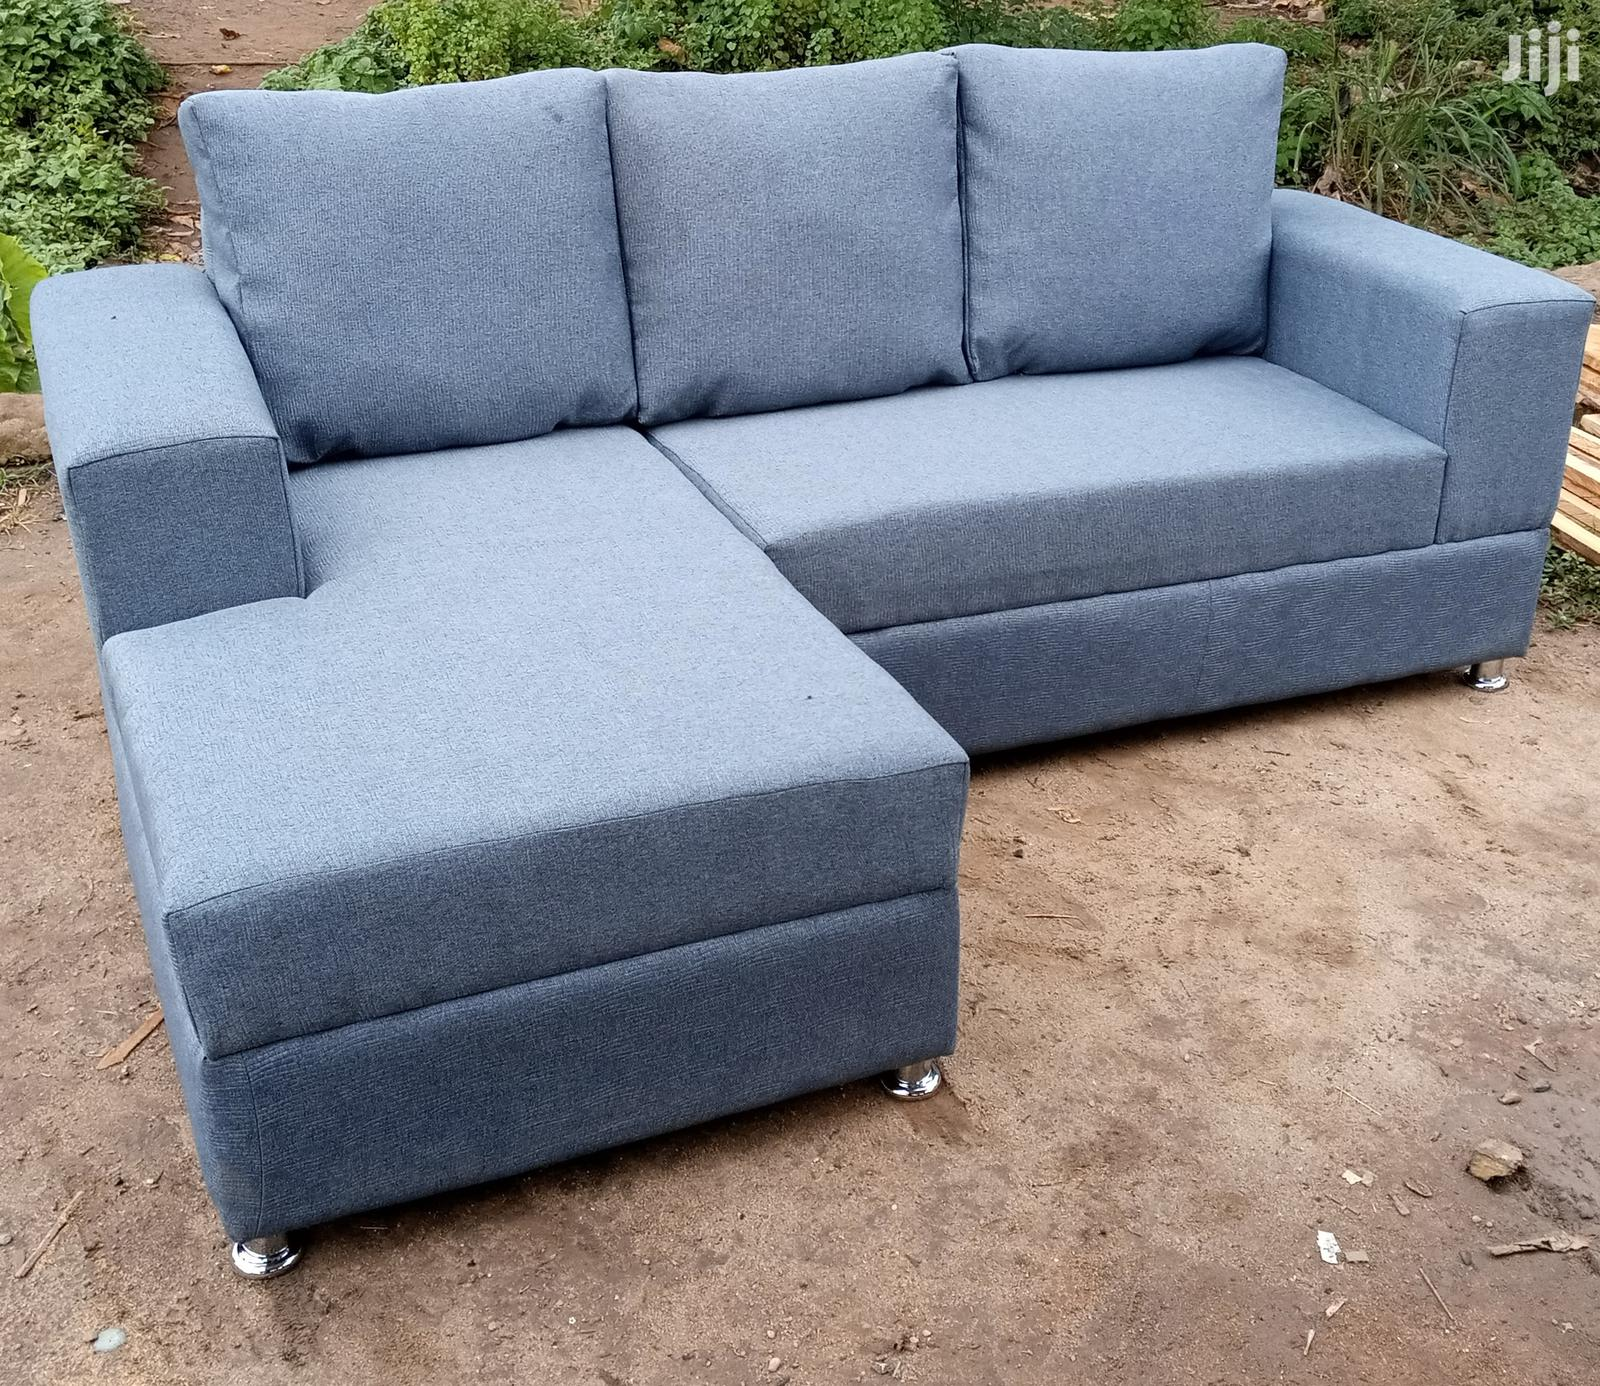 new l shaped sofa chair gray colour fabric